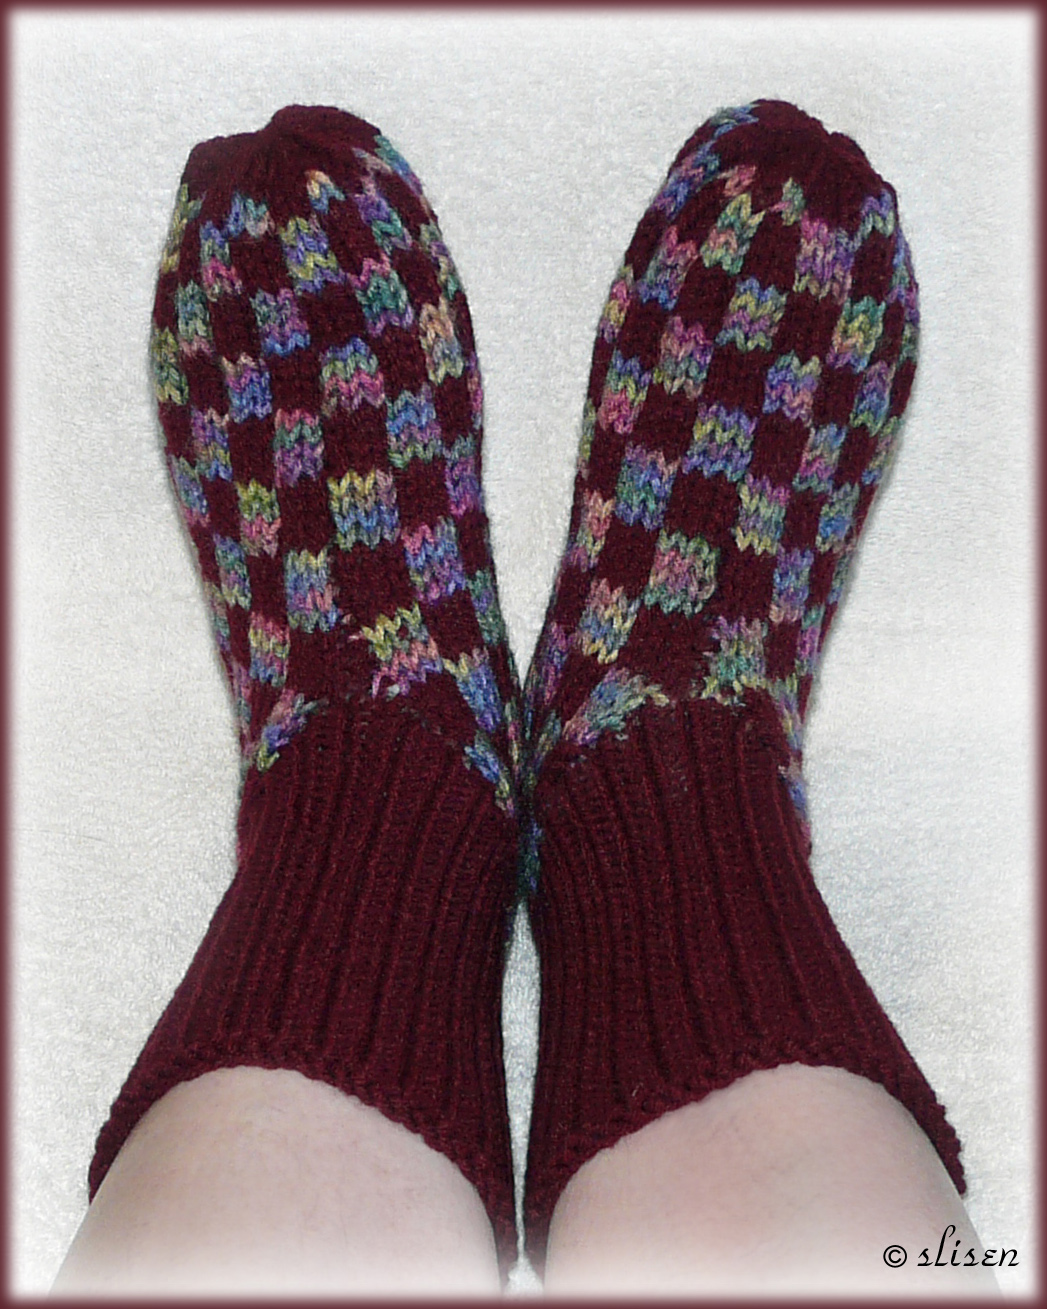 Knitting Pattern For Checkerboard Slippers : Slisens Happy Place: Fairisle Checkerboard Slippers